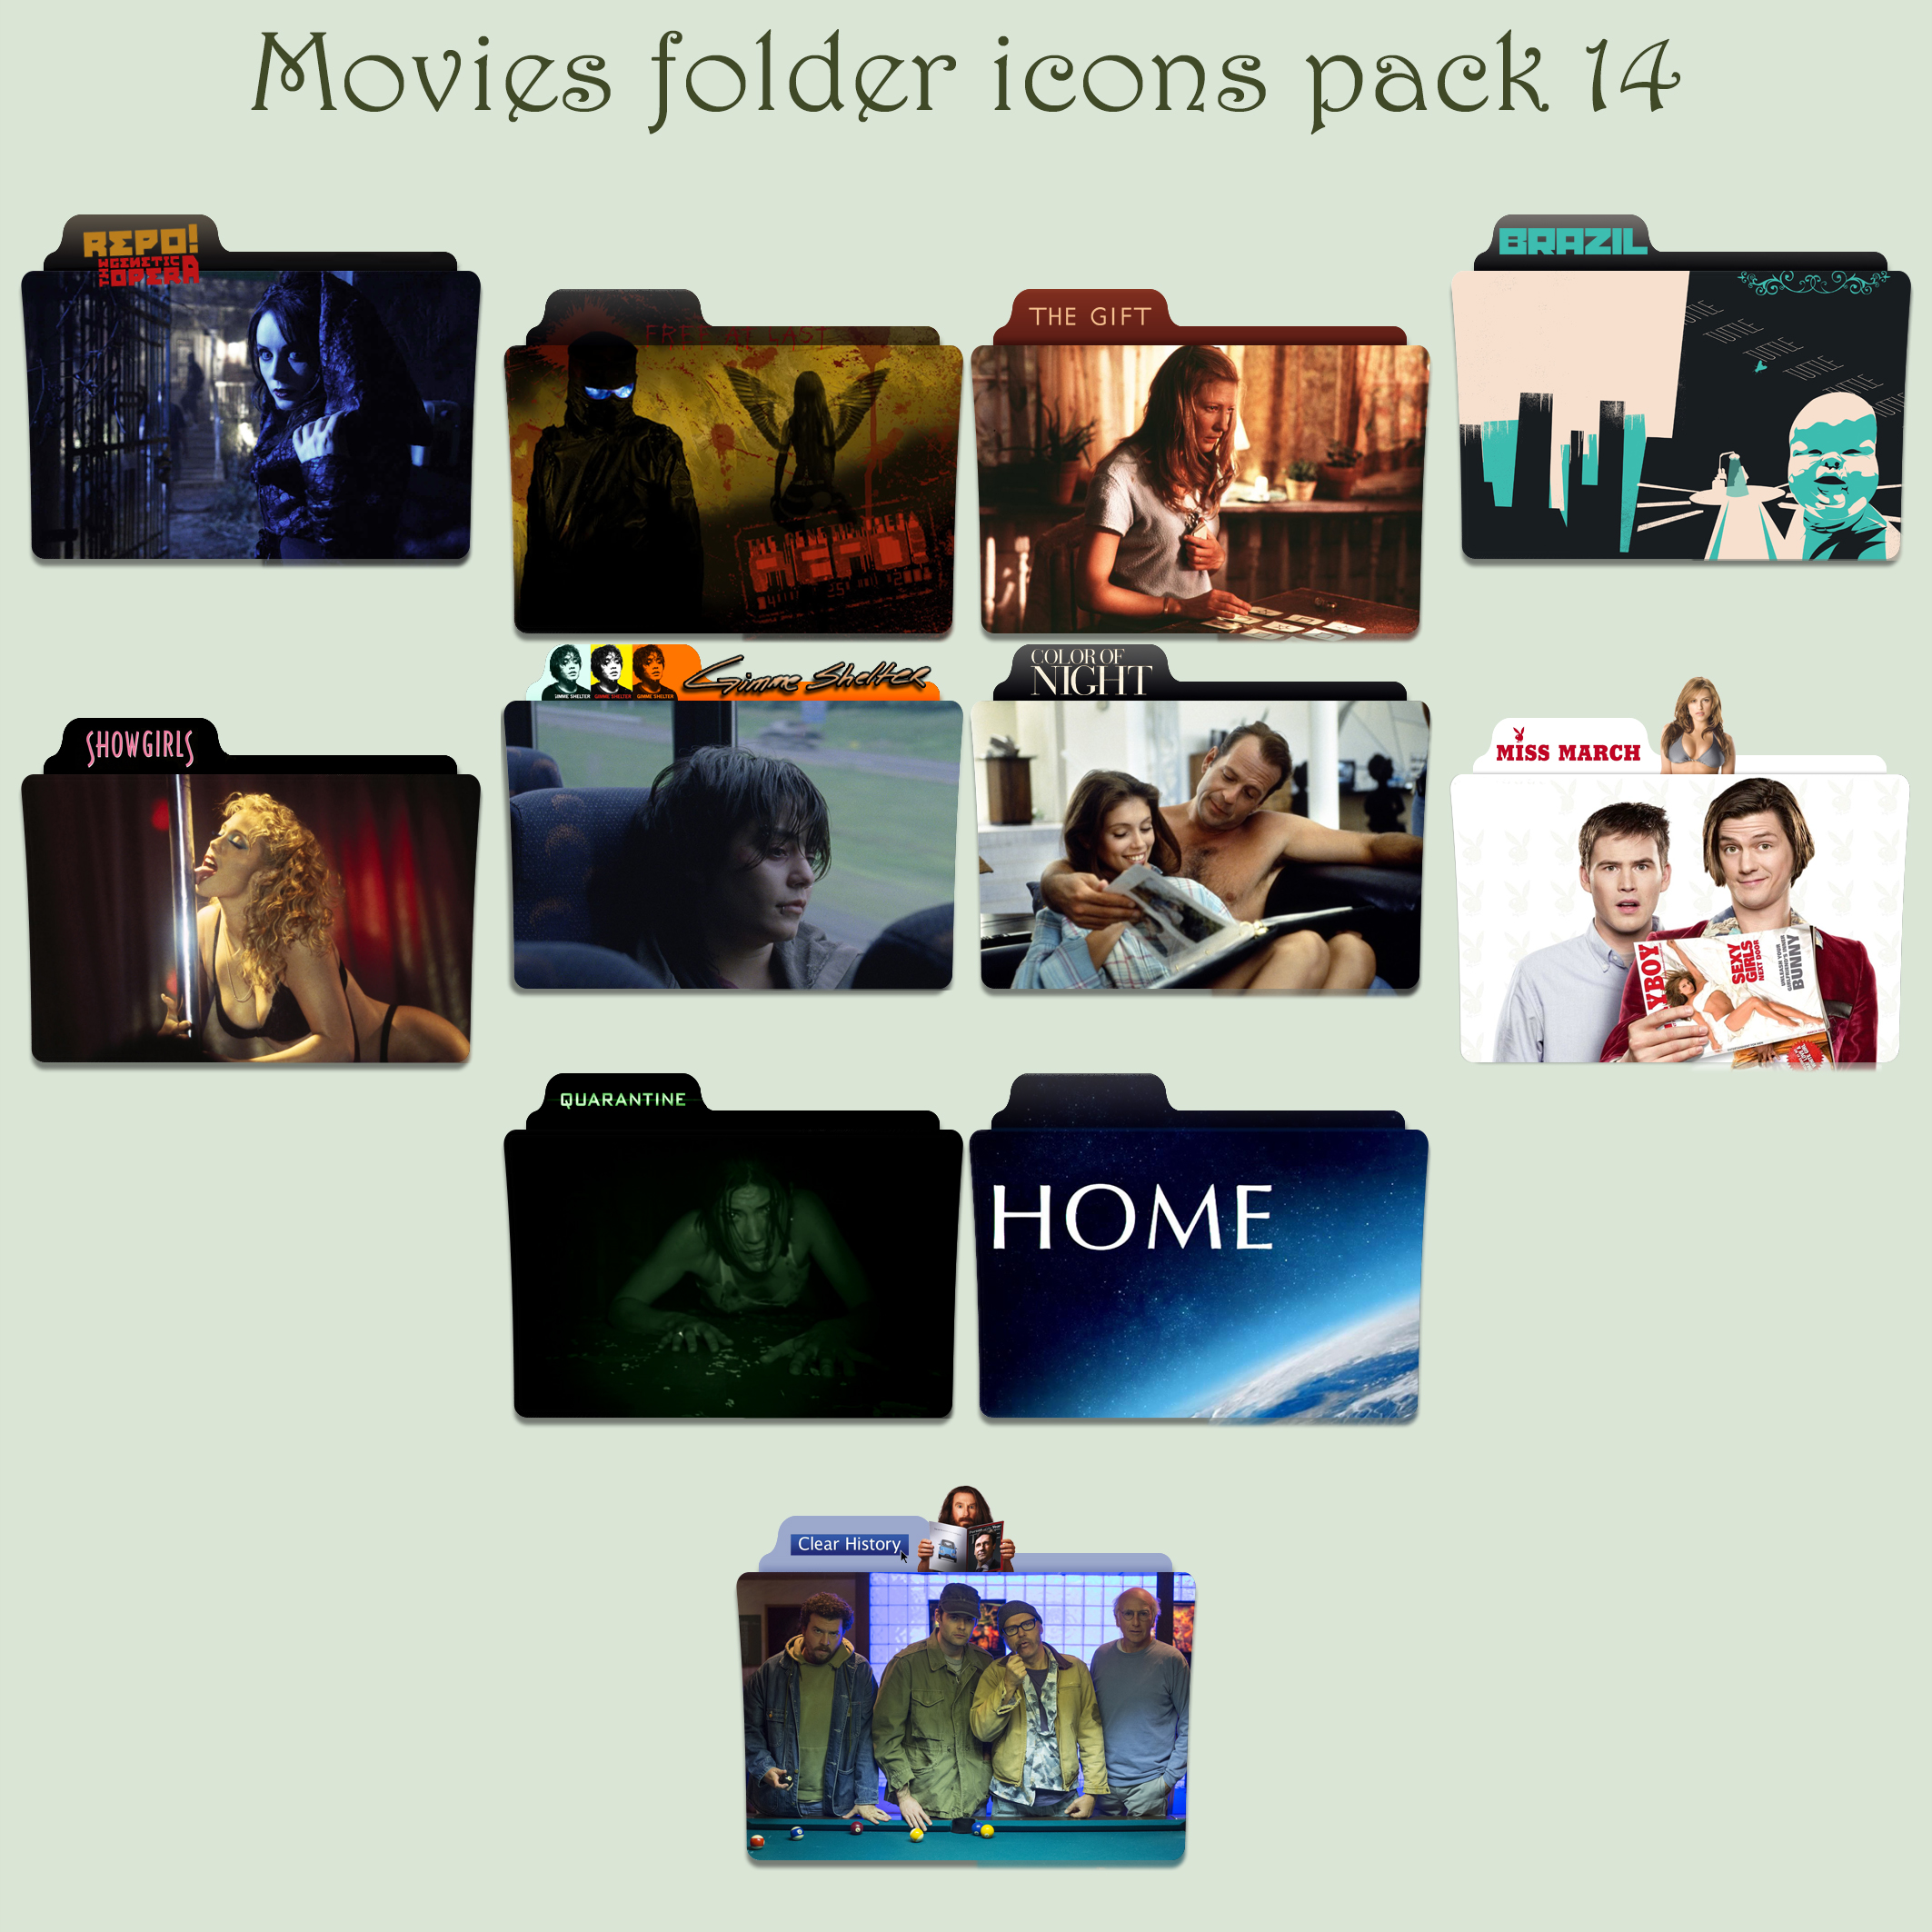 Movies folder icons pack 14 by Cadavericale on DeviantArt